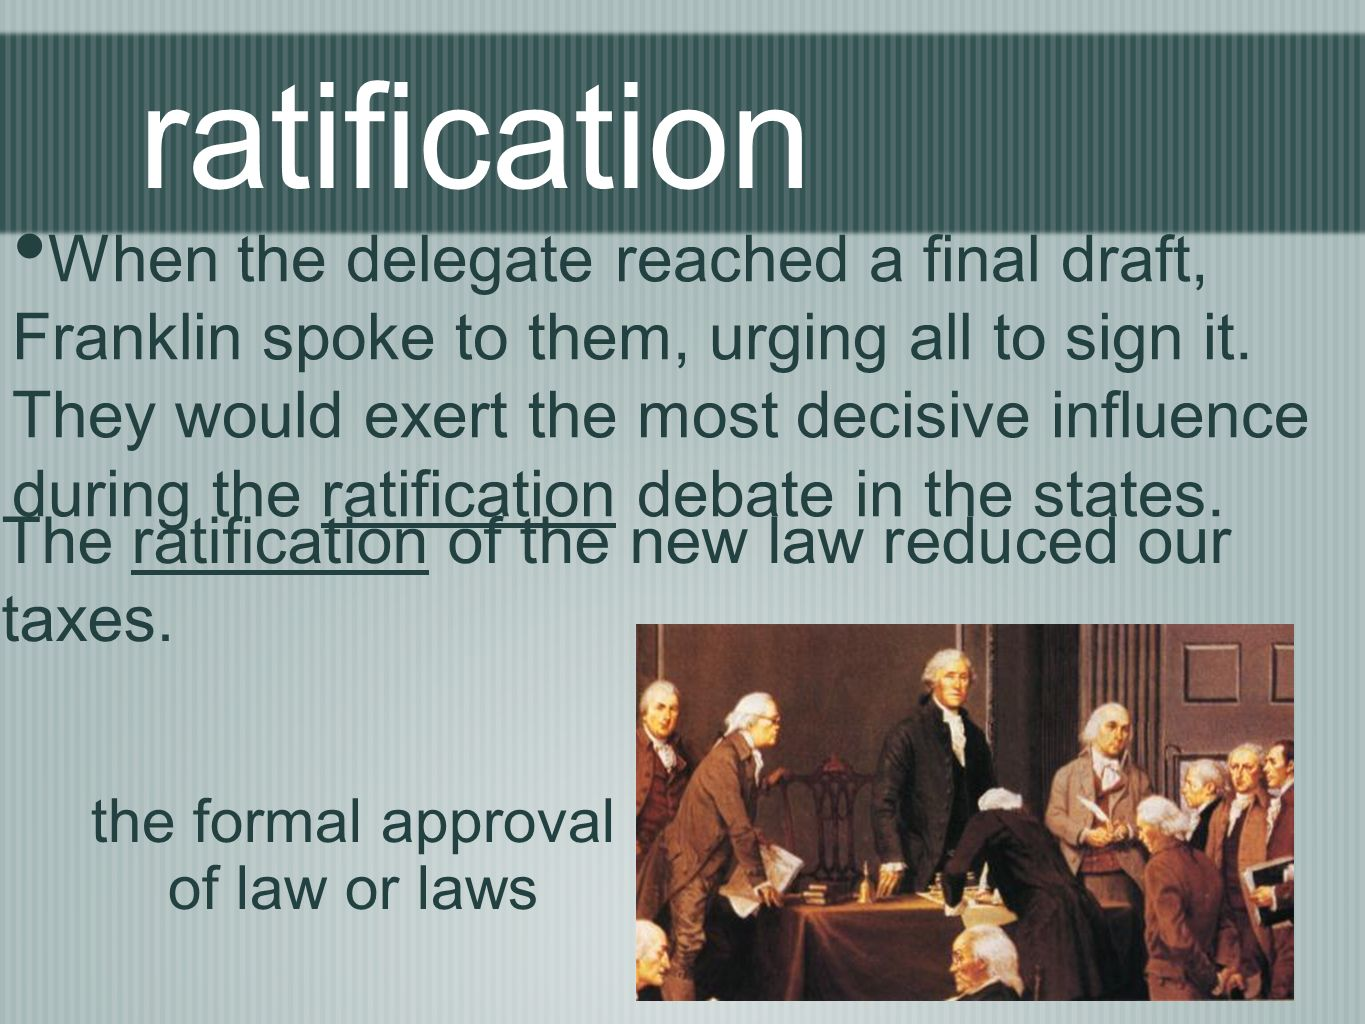 ratification When the delegate reached a final draft, Franklin spoke to them, urging all to sign it. They would exert the most decisive influence duri